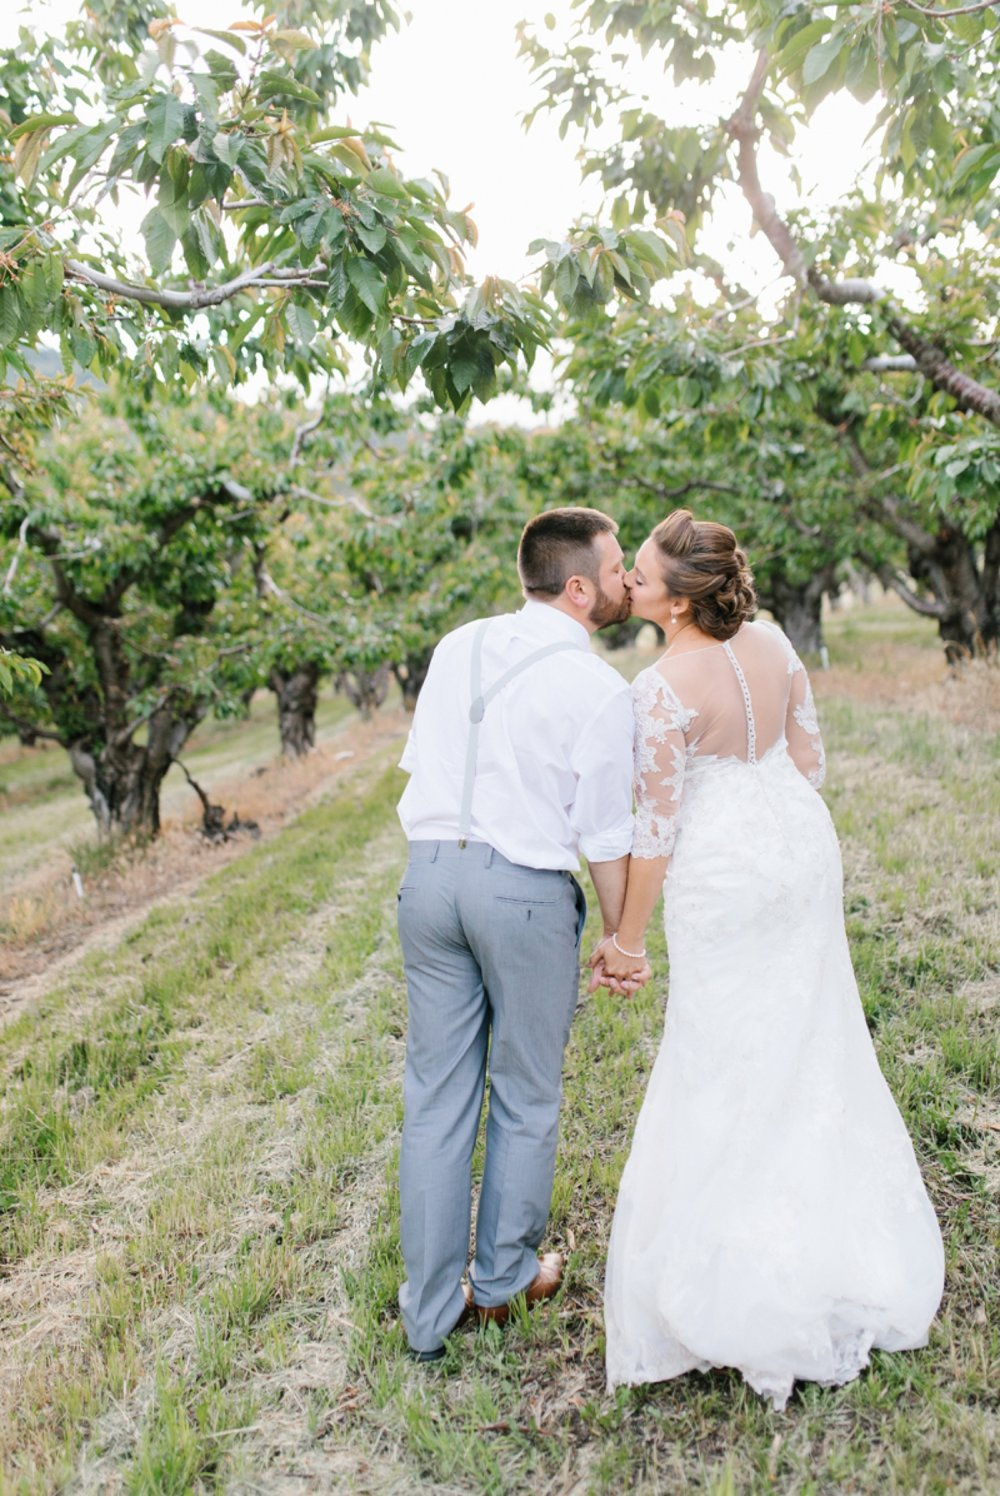 Wenatchee Wedding Photographer | Hampton Hideaway | Summer Rustic Wedding Eastern Washington | Emma Rose Company | Pastel Wedding Inspiration | Lace Wedding | Pacific Northwest Wedding 99.jpg